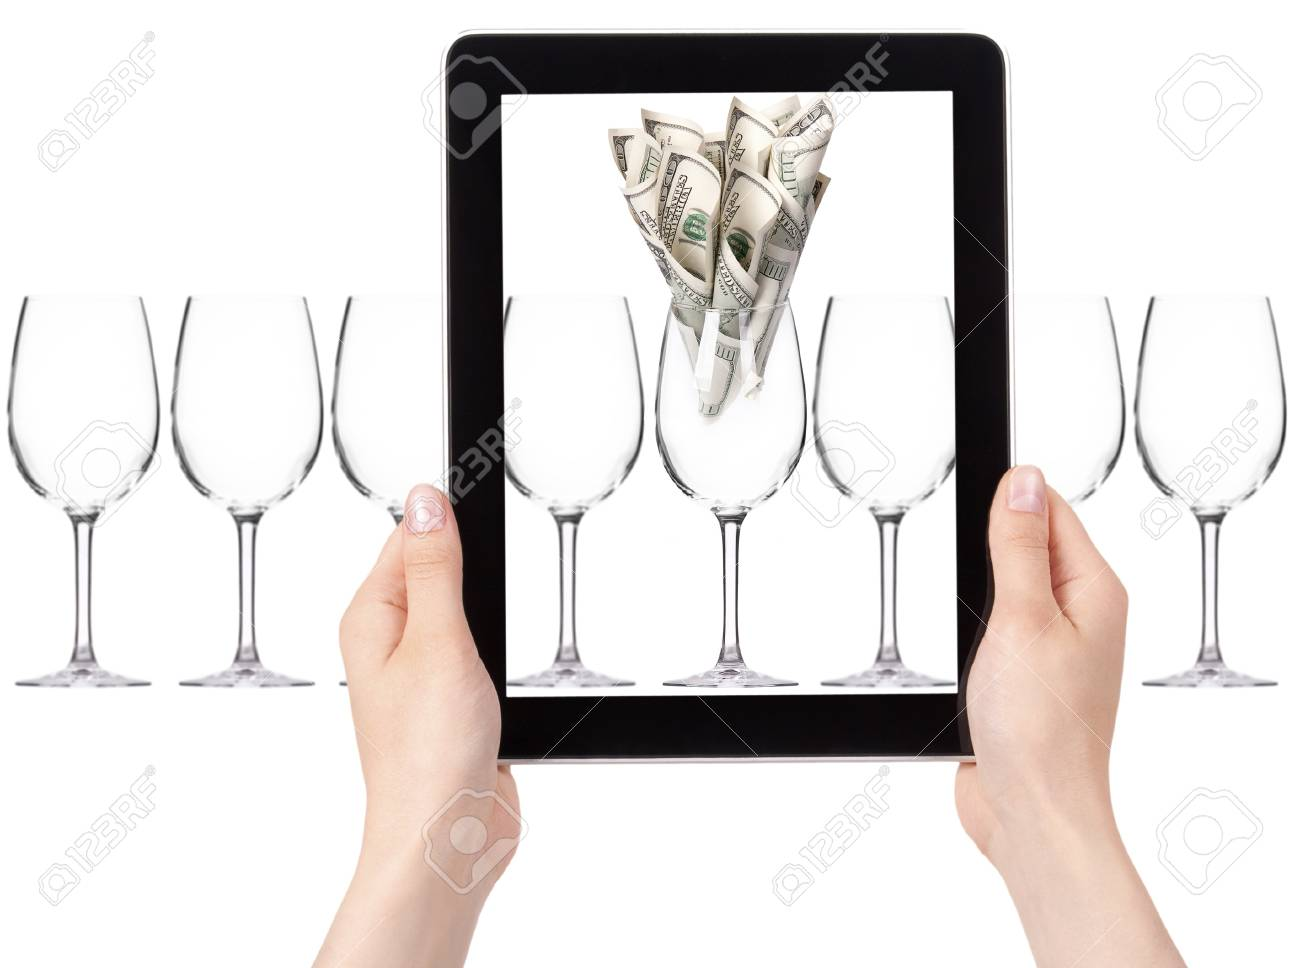 business leader concept with tablet PC screen  isolated on a white background Stock Photo - 15968823